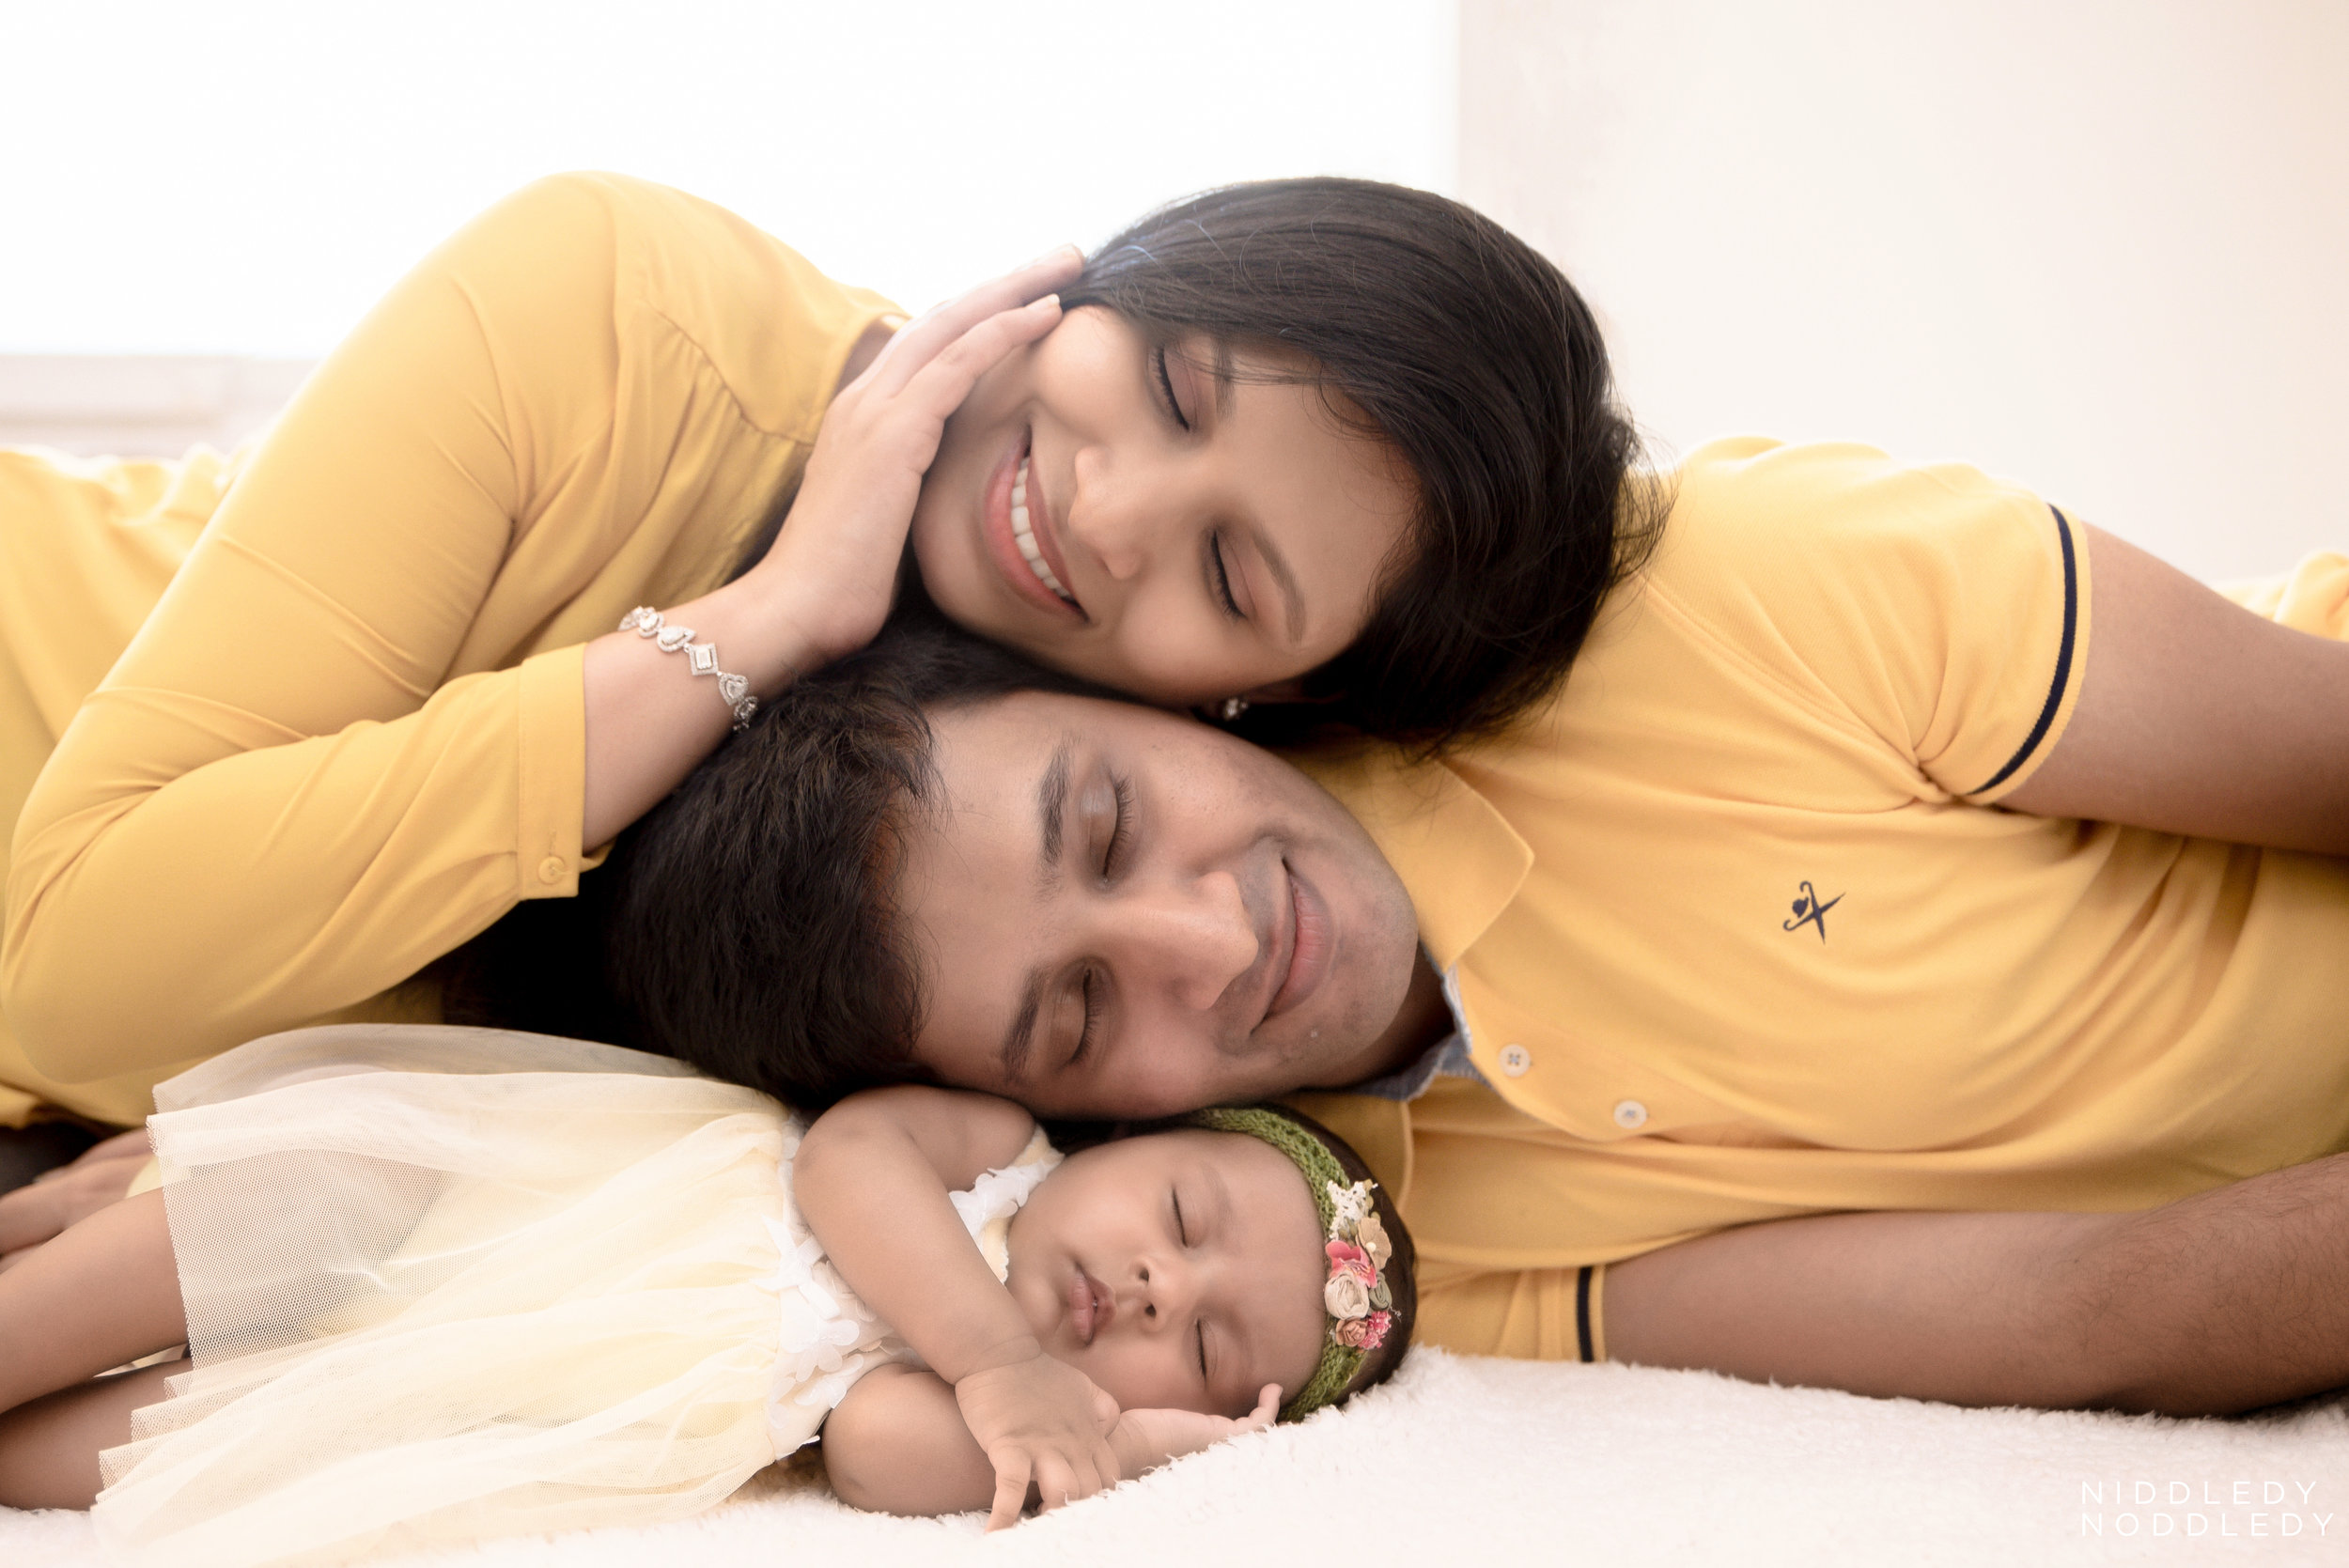 Anaisha Baby Photoshoot ❤ NiddledyNoddledy.com ~ Bumps to Babies Photography, Kolkata - 26.jpg